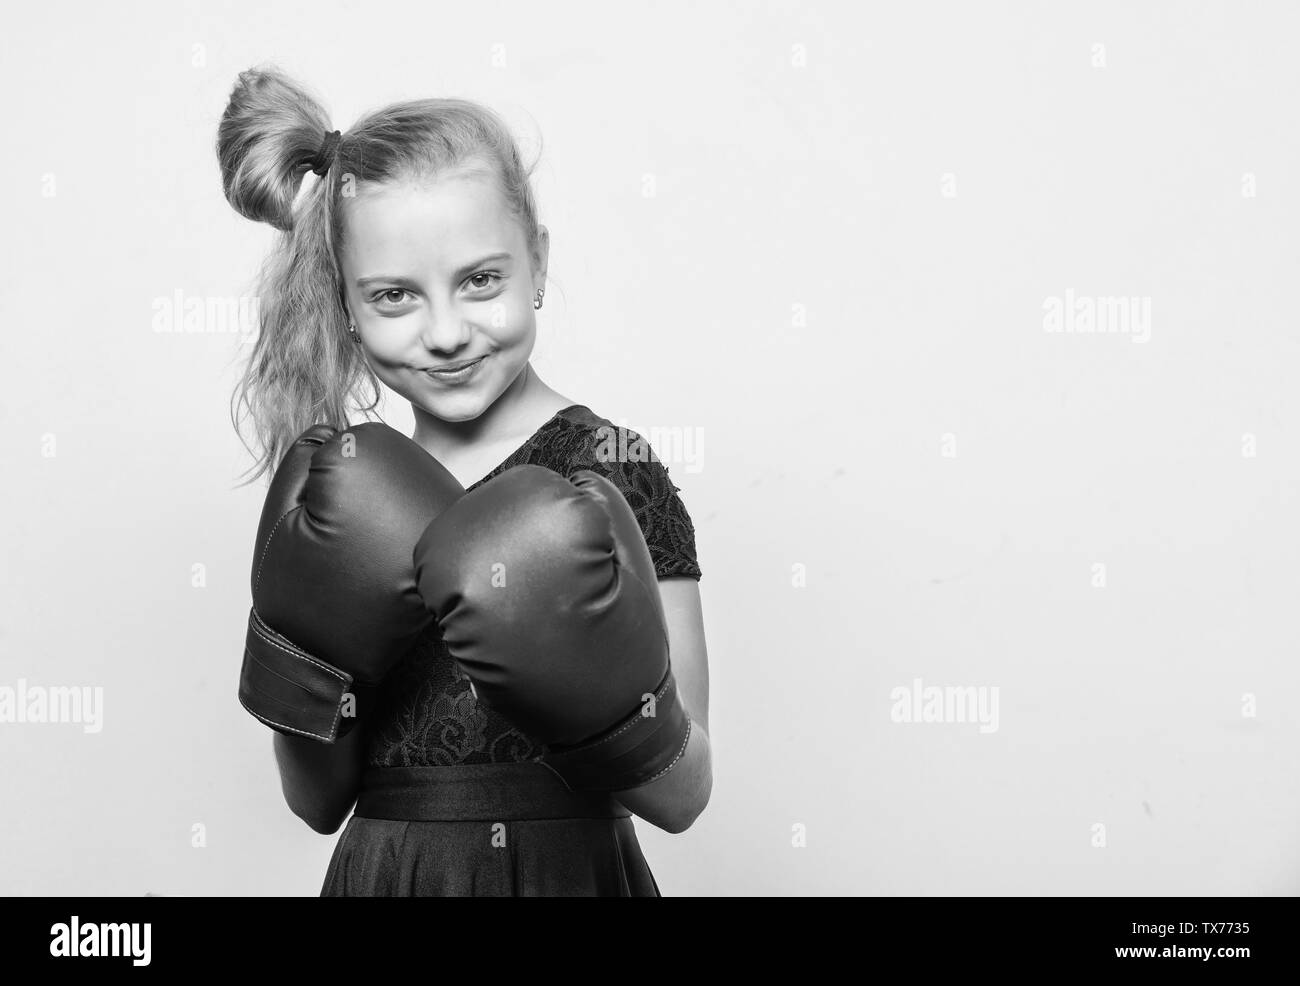 little girl in boxing gloves punching. knockout and energy. Sport success. training with coach. Fight. Boxer child workout, healthy fitness. Sport and sportswear fashion, copy space. Ready to fight. - Stock Image